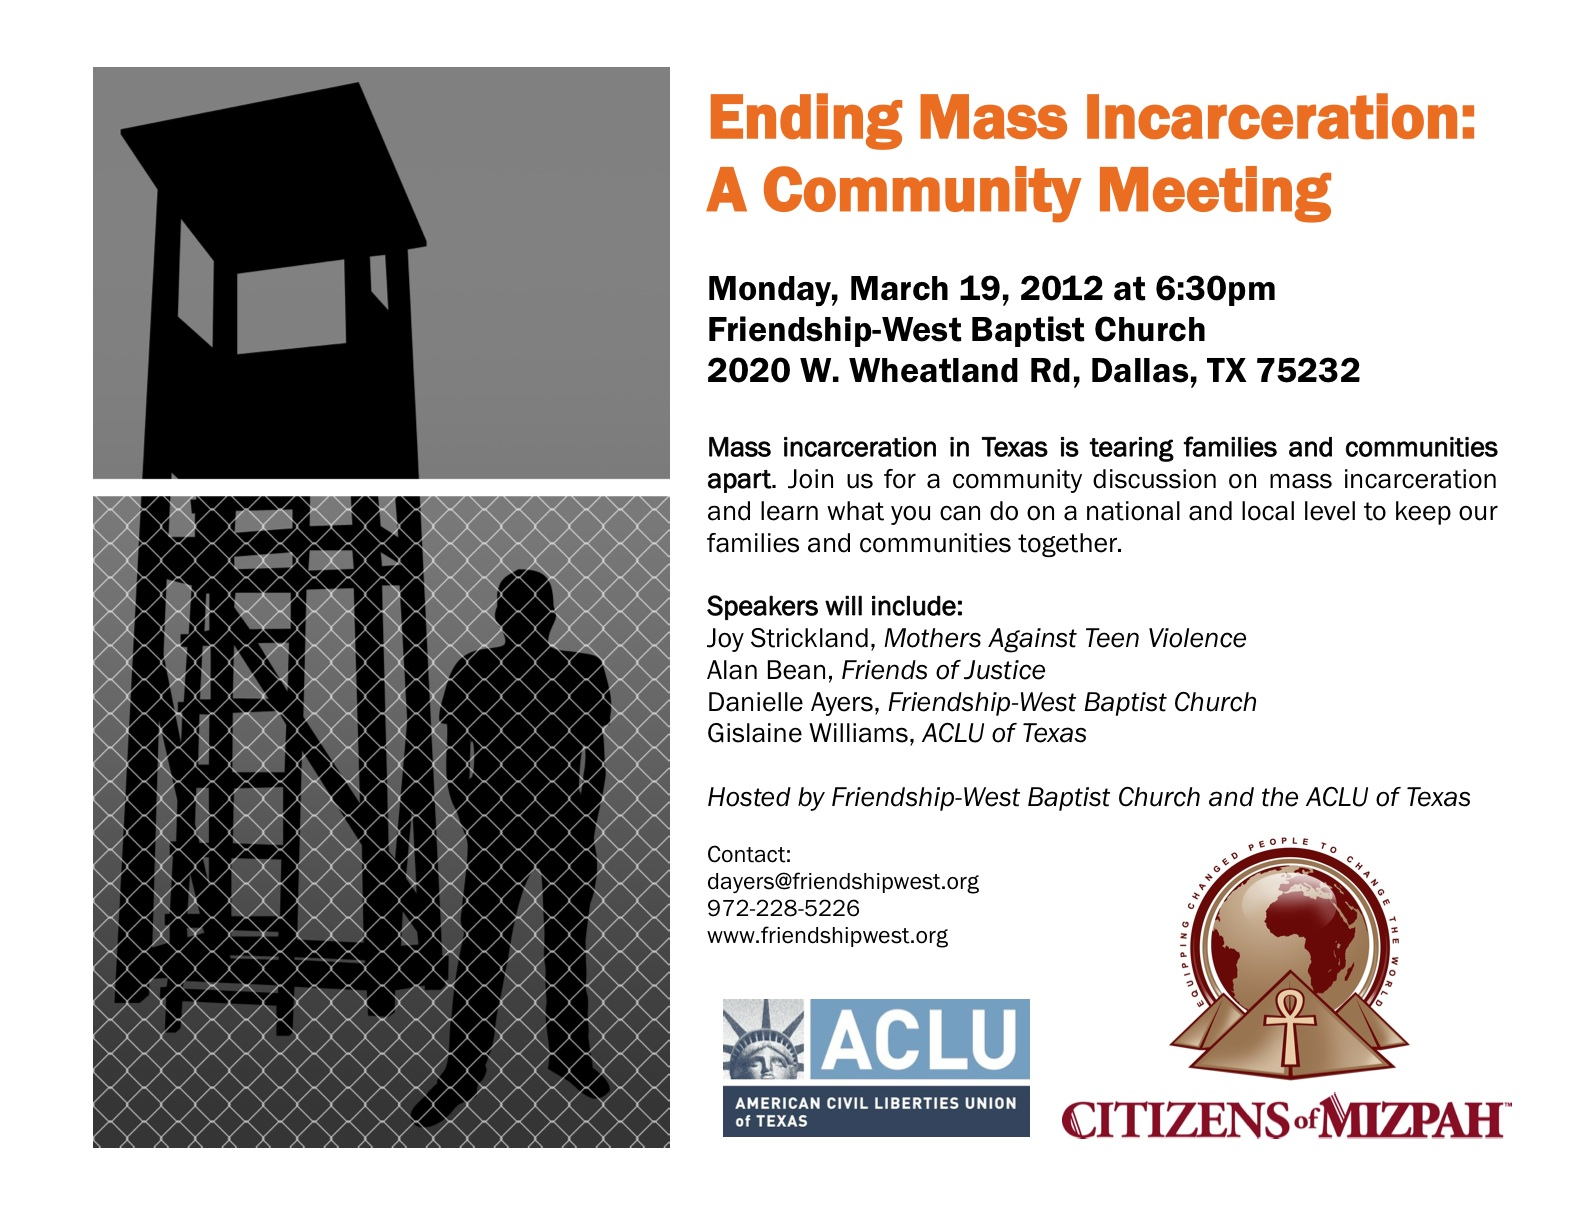 State Advocacy News: Grassroots Actions to Challenge Mass Incarceration